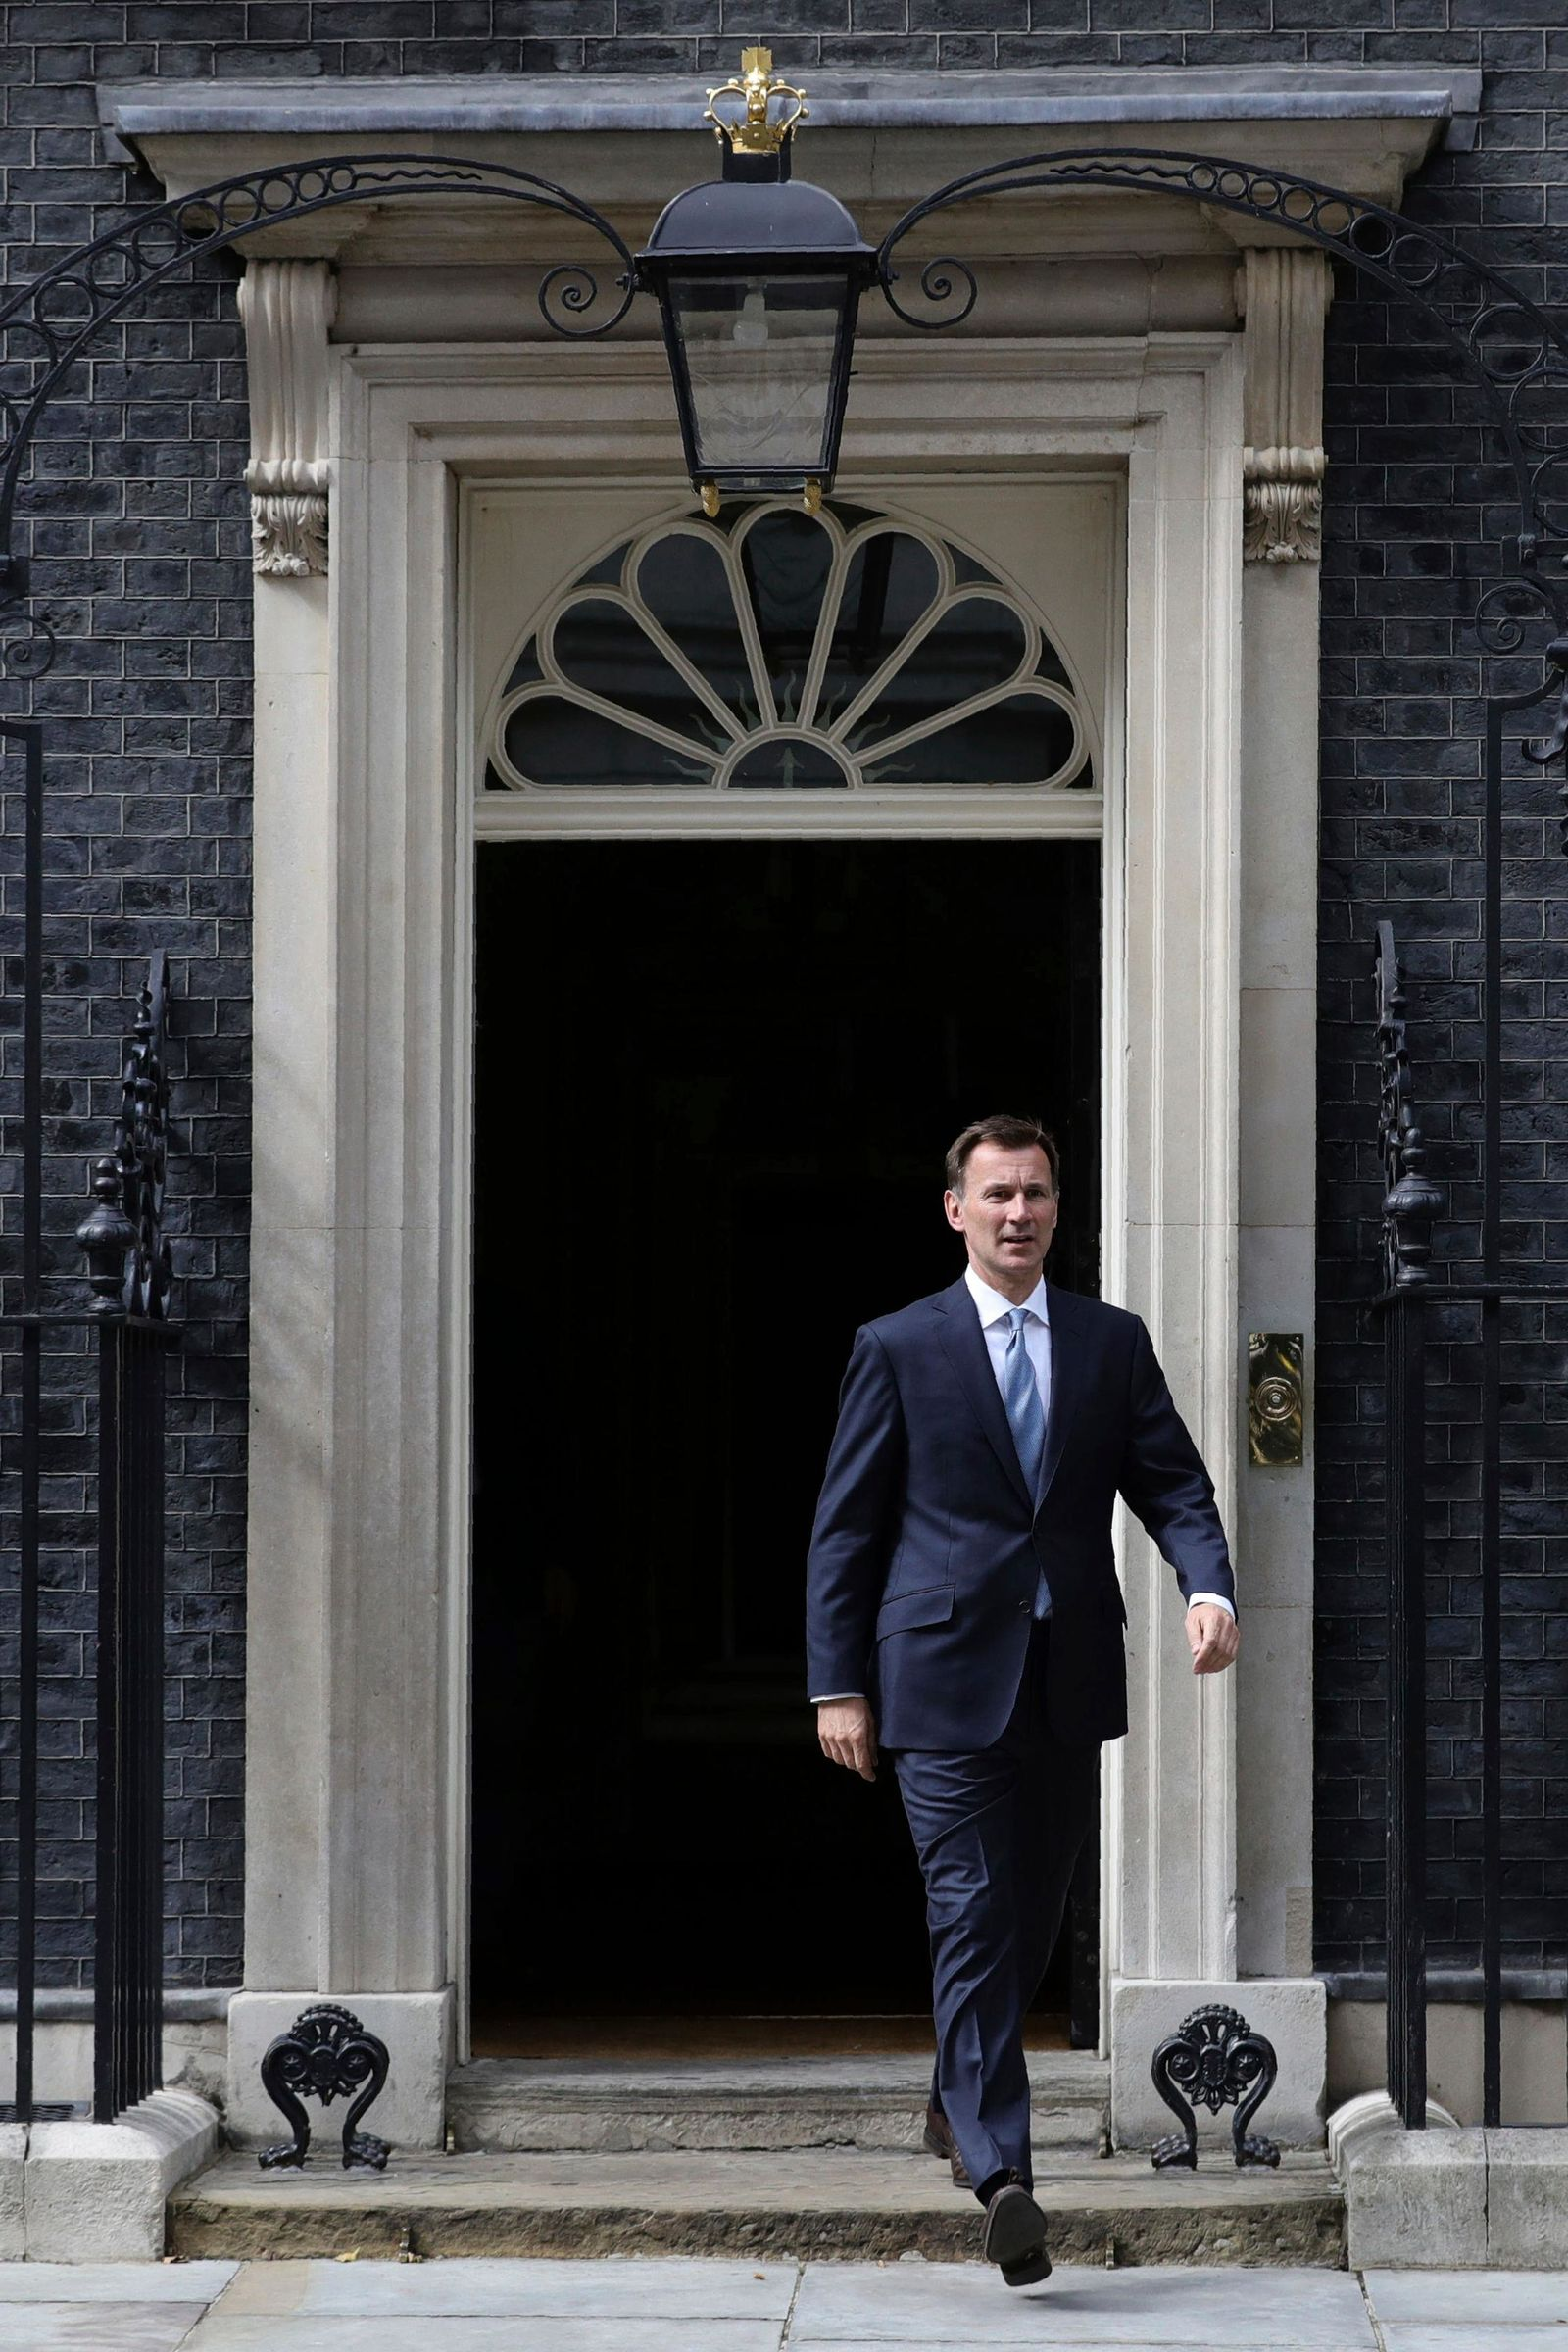 Britain's Foreign Secretary Jeremy Hunt leaves 10 Downing Street, following a meeting held over British oil tanker Stena Impero which was captured by Iran, Saturday July 20, 2019.(Aaron Chown/PA via AP)